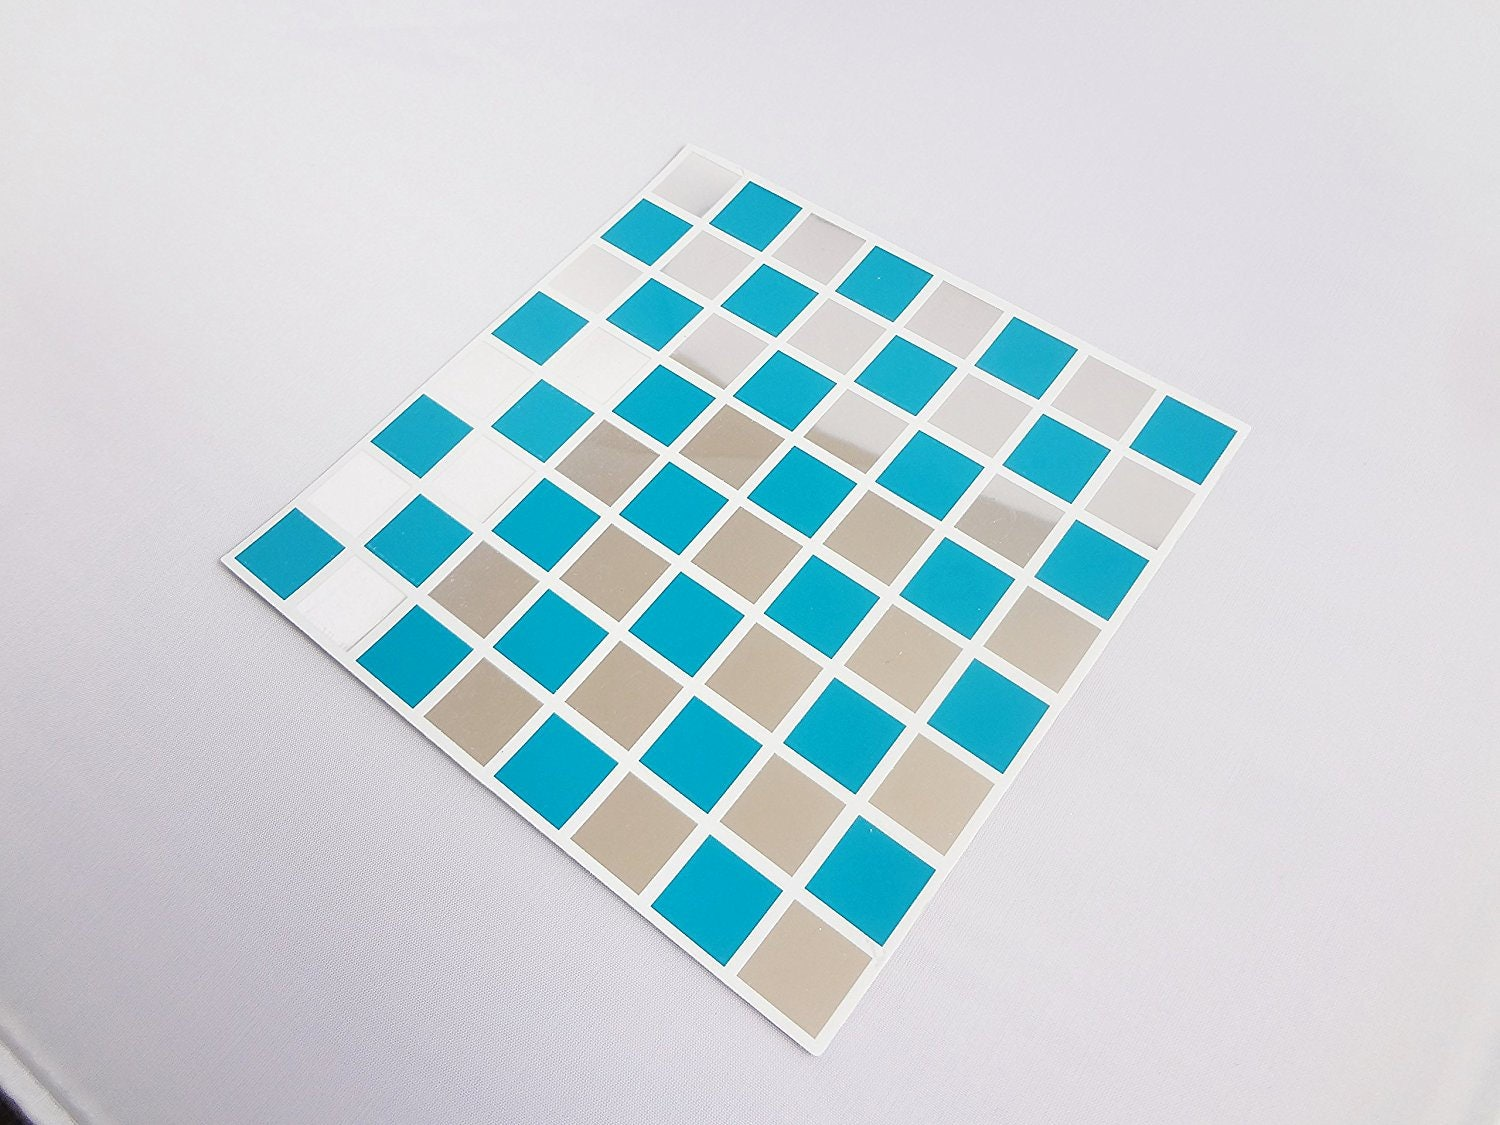 Pack of 10 Blue and MIRROR mosaic tile stickers transfers with added gloss affect just peel and stick bathroom kitchen